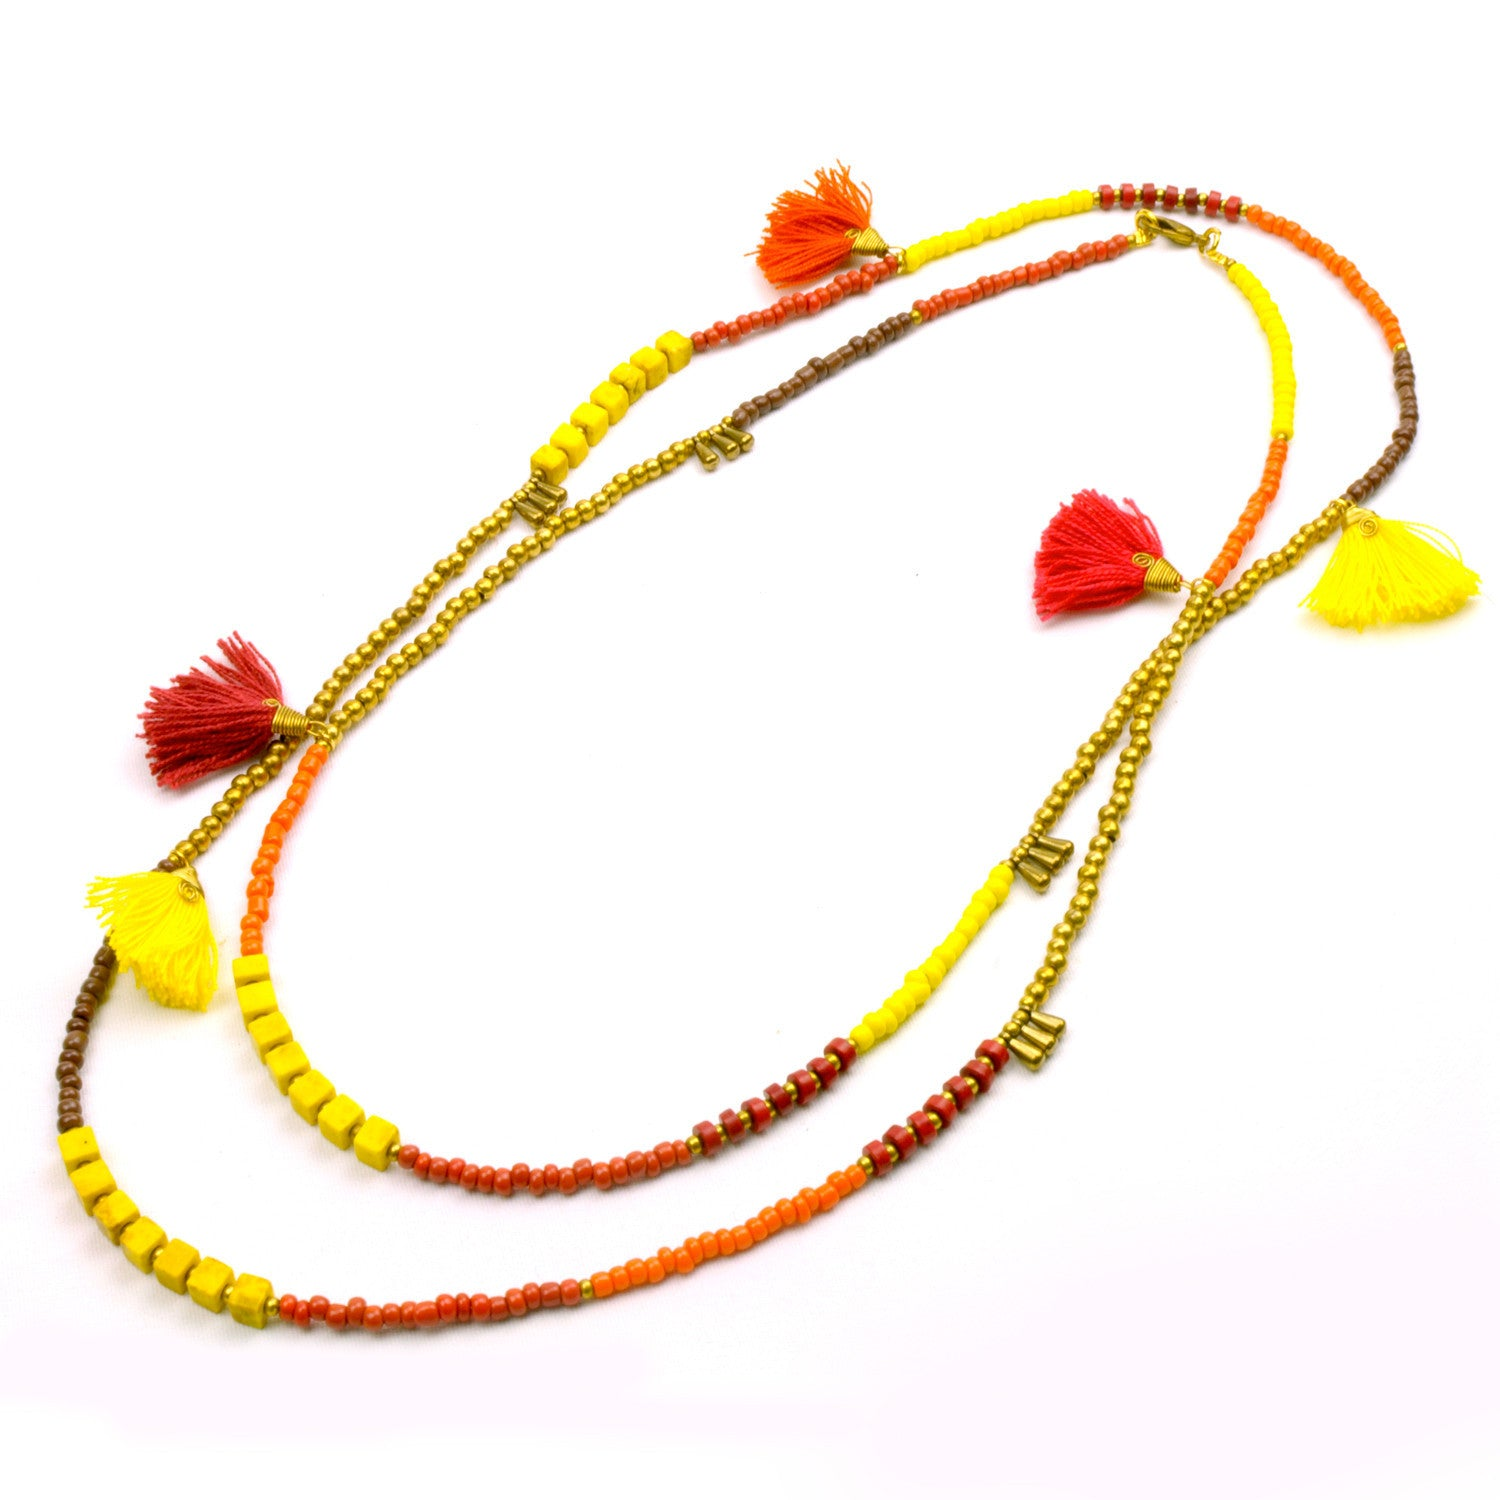 Kerala 3-in-1 Necklace Fire - Global Groove